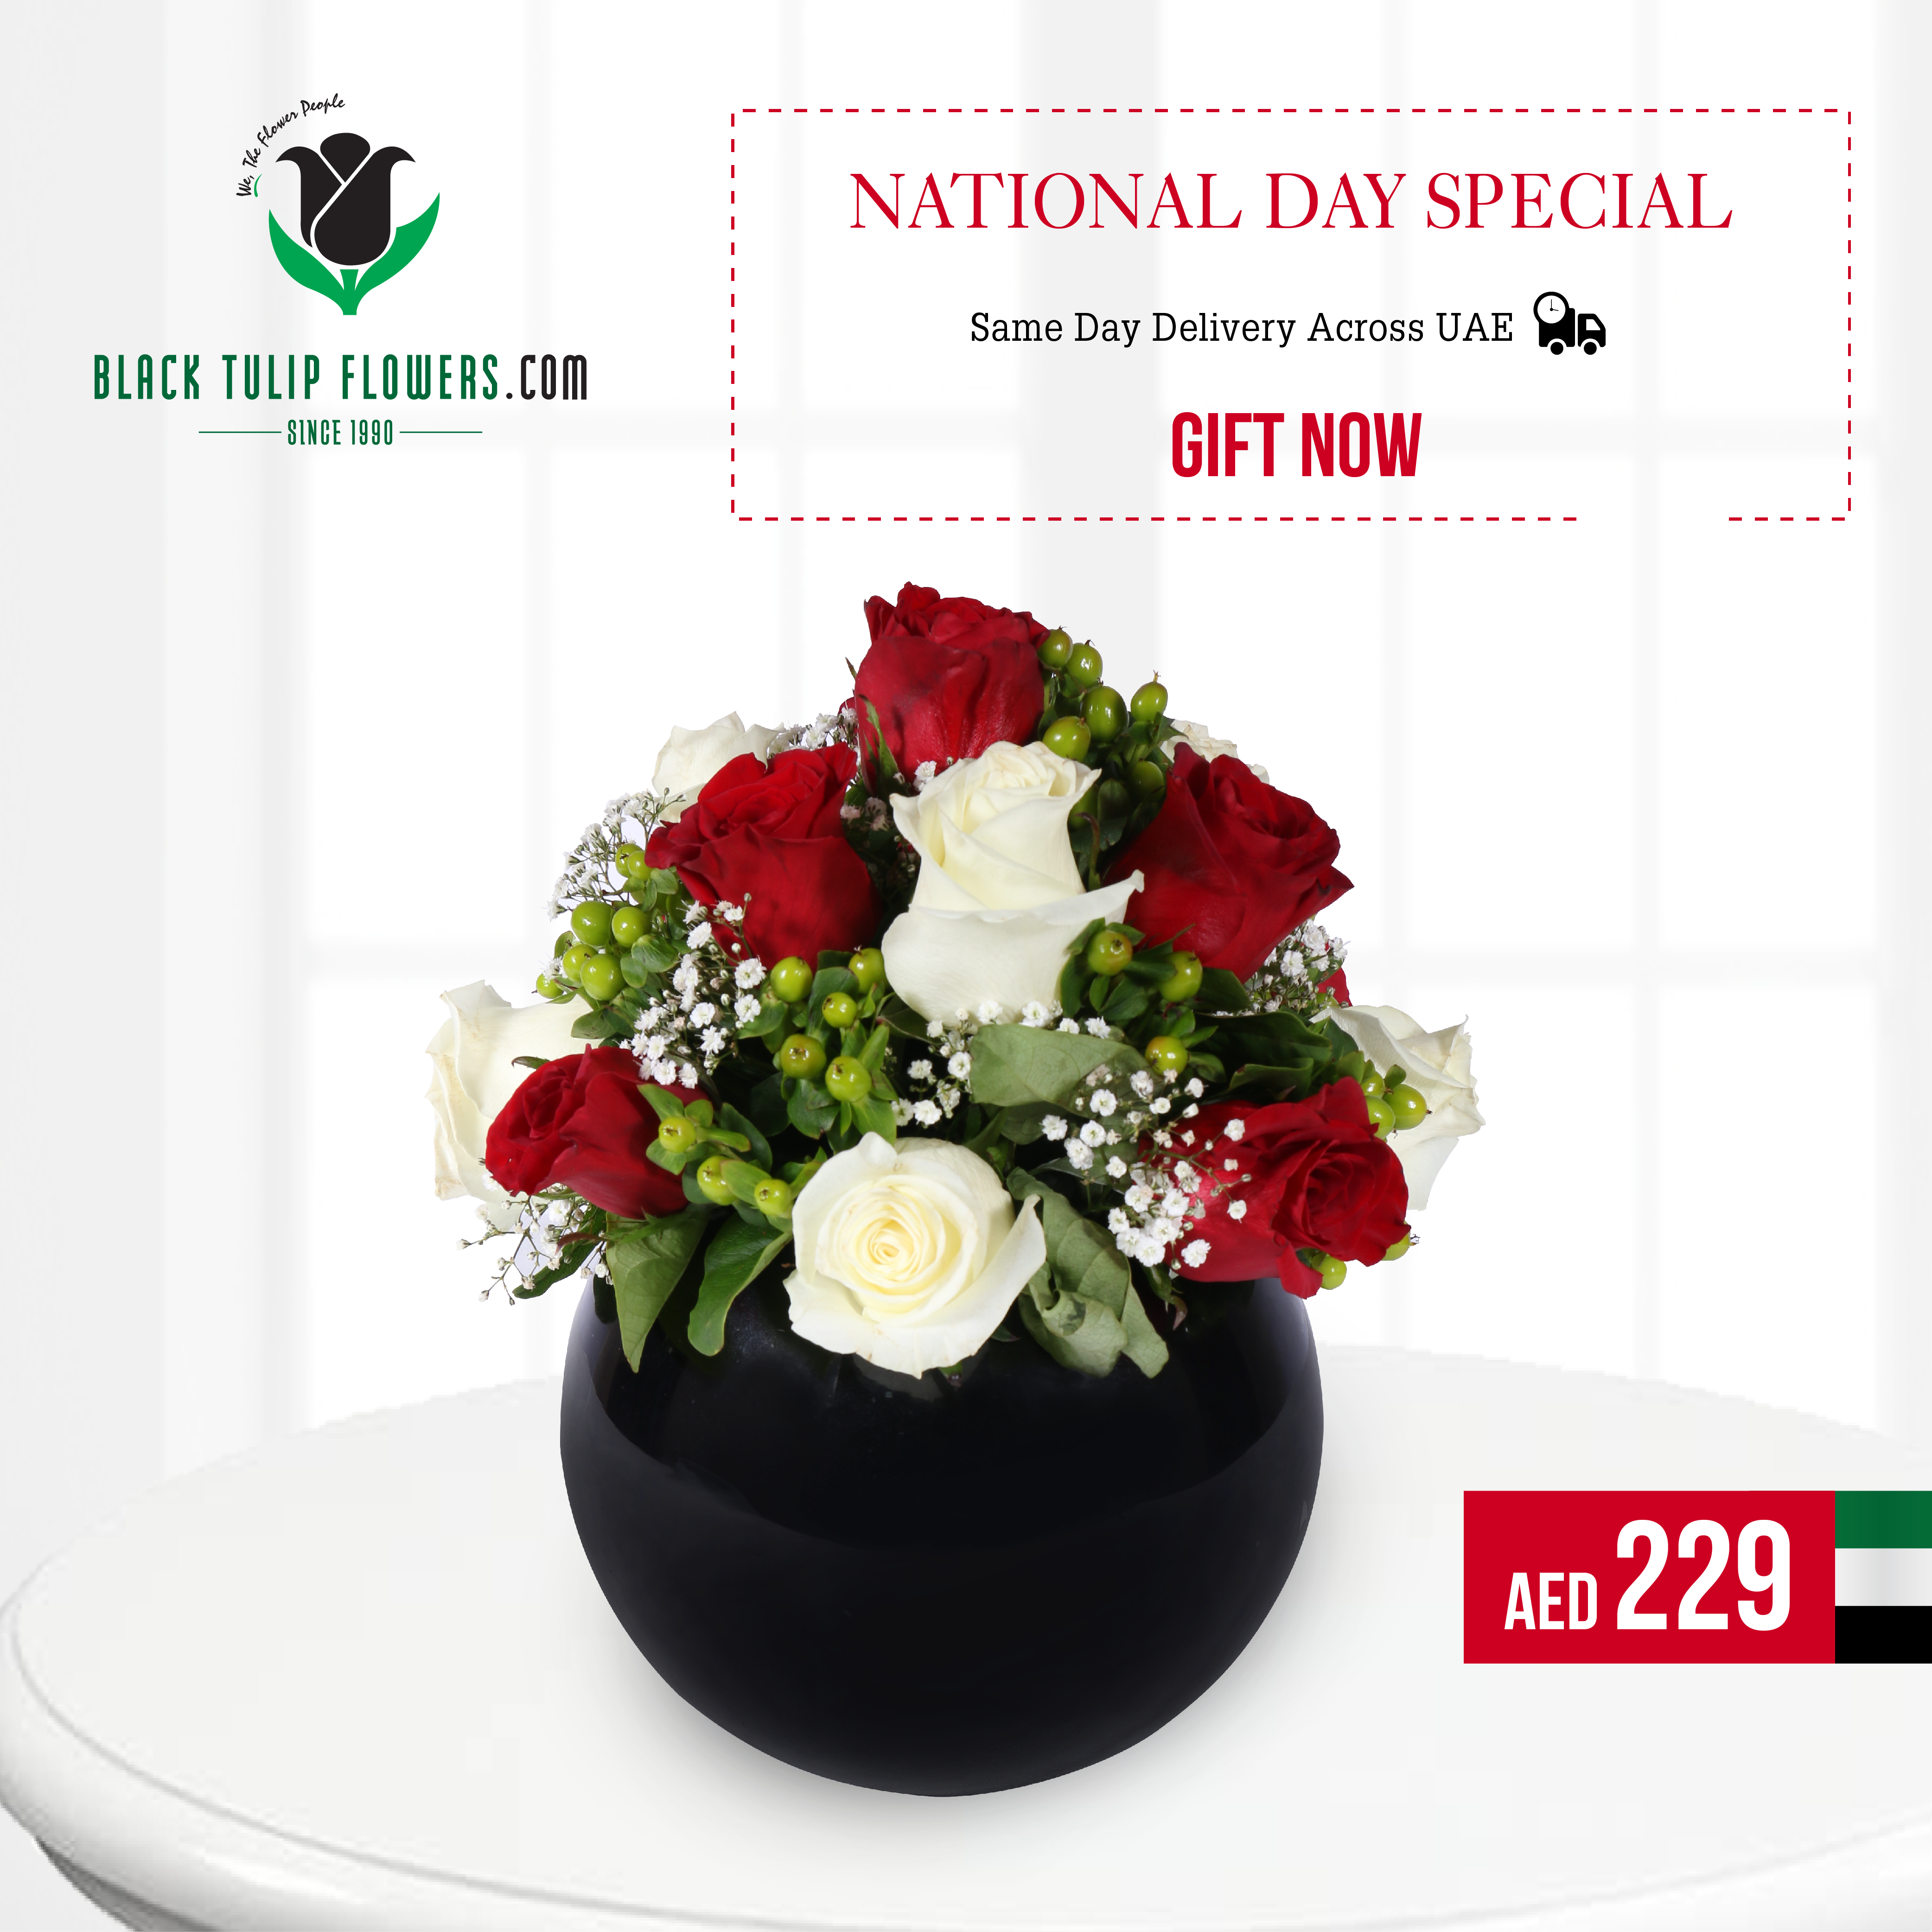 Flowers & Bouquet to Celebrate UAE's 45th National Day